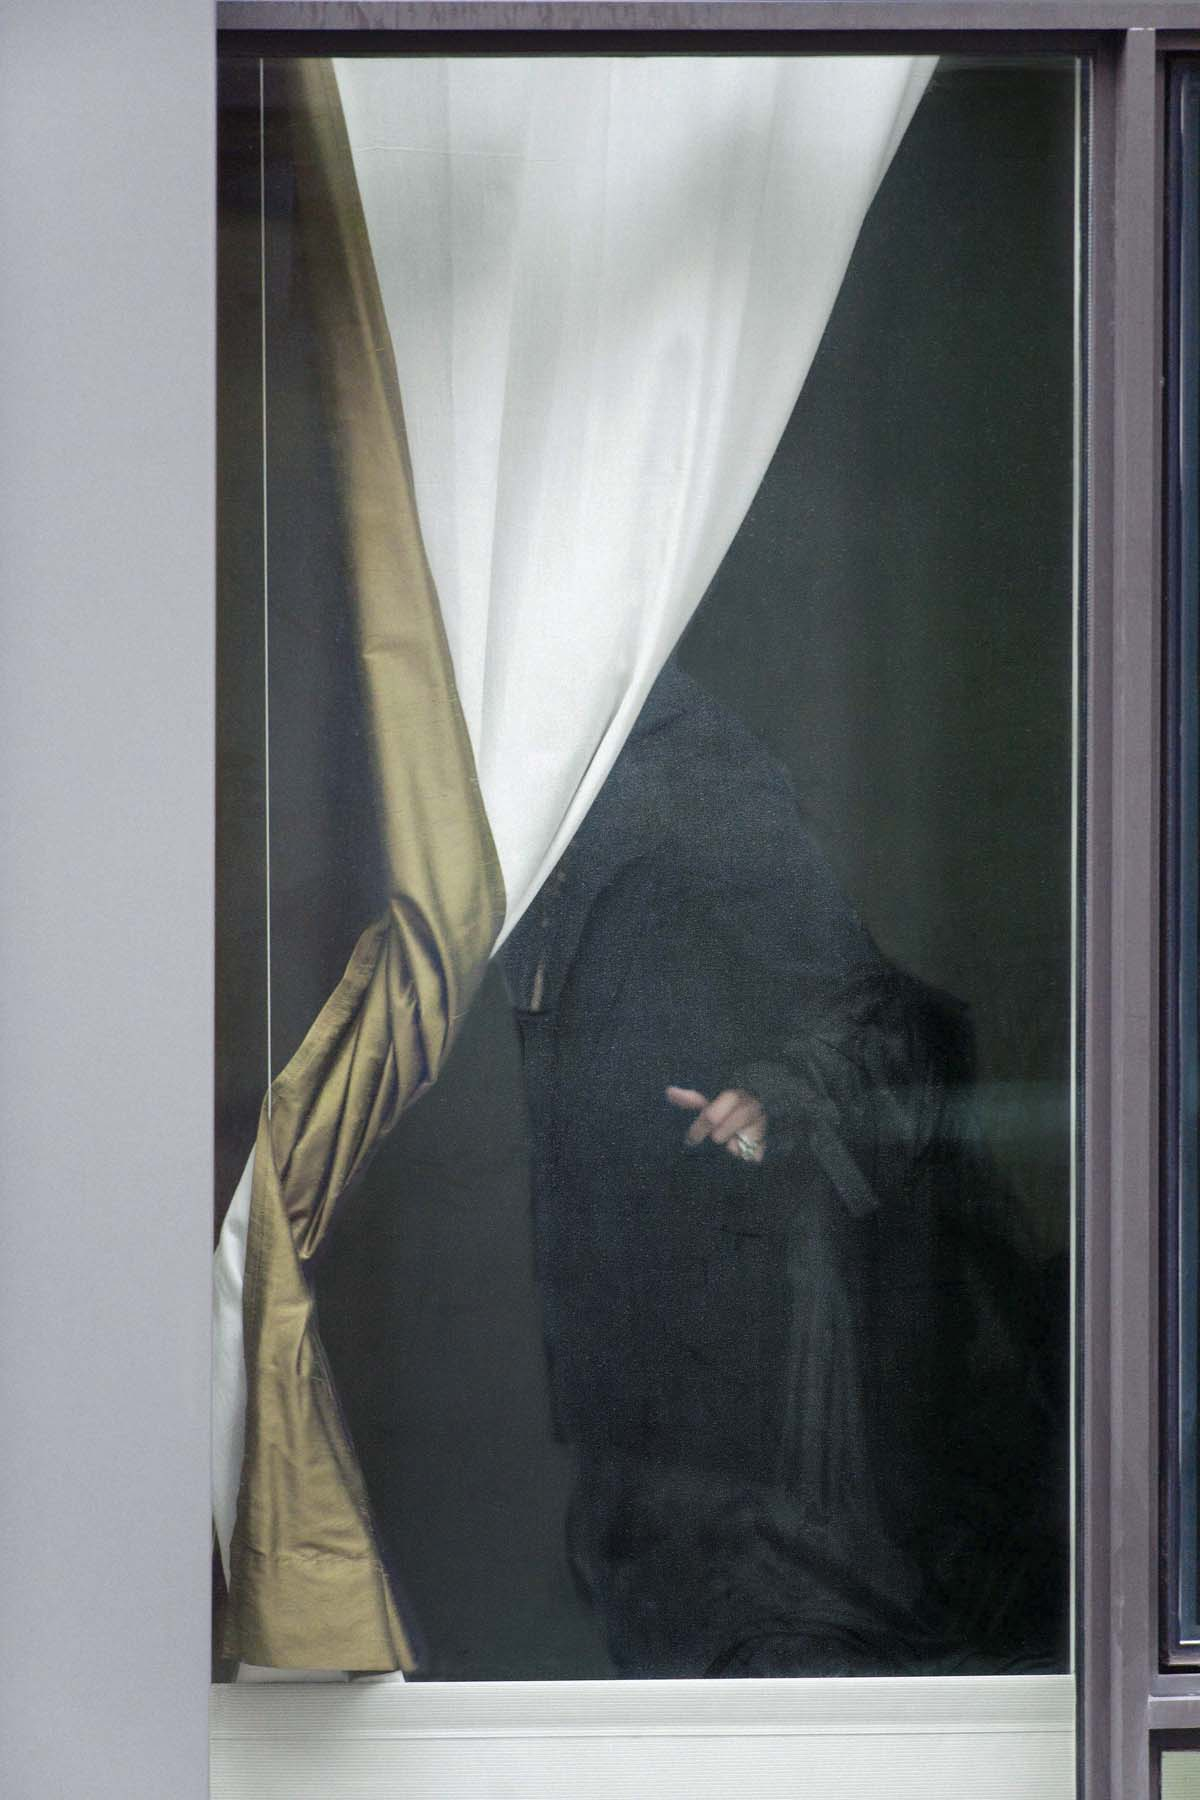 Arne Svenson, The Neighbors #46, 2014, pigment print, 45 x 30 inches